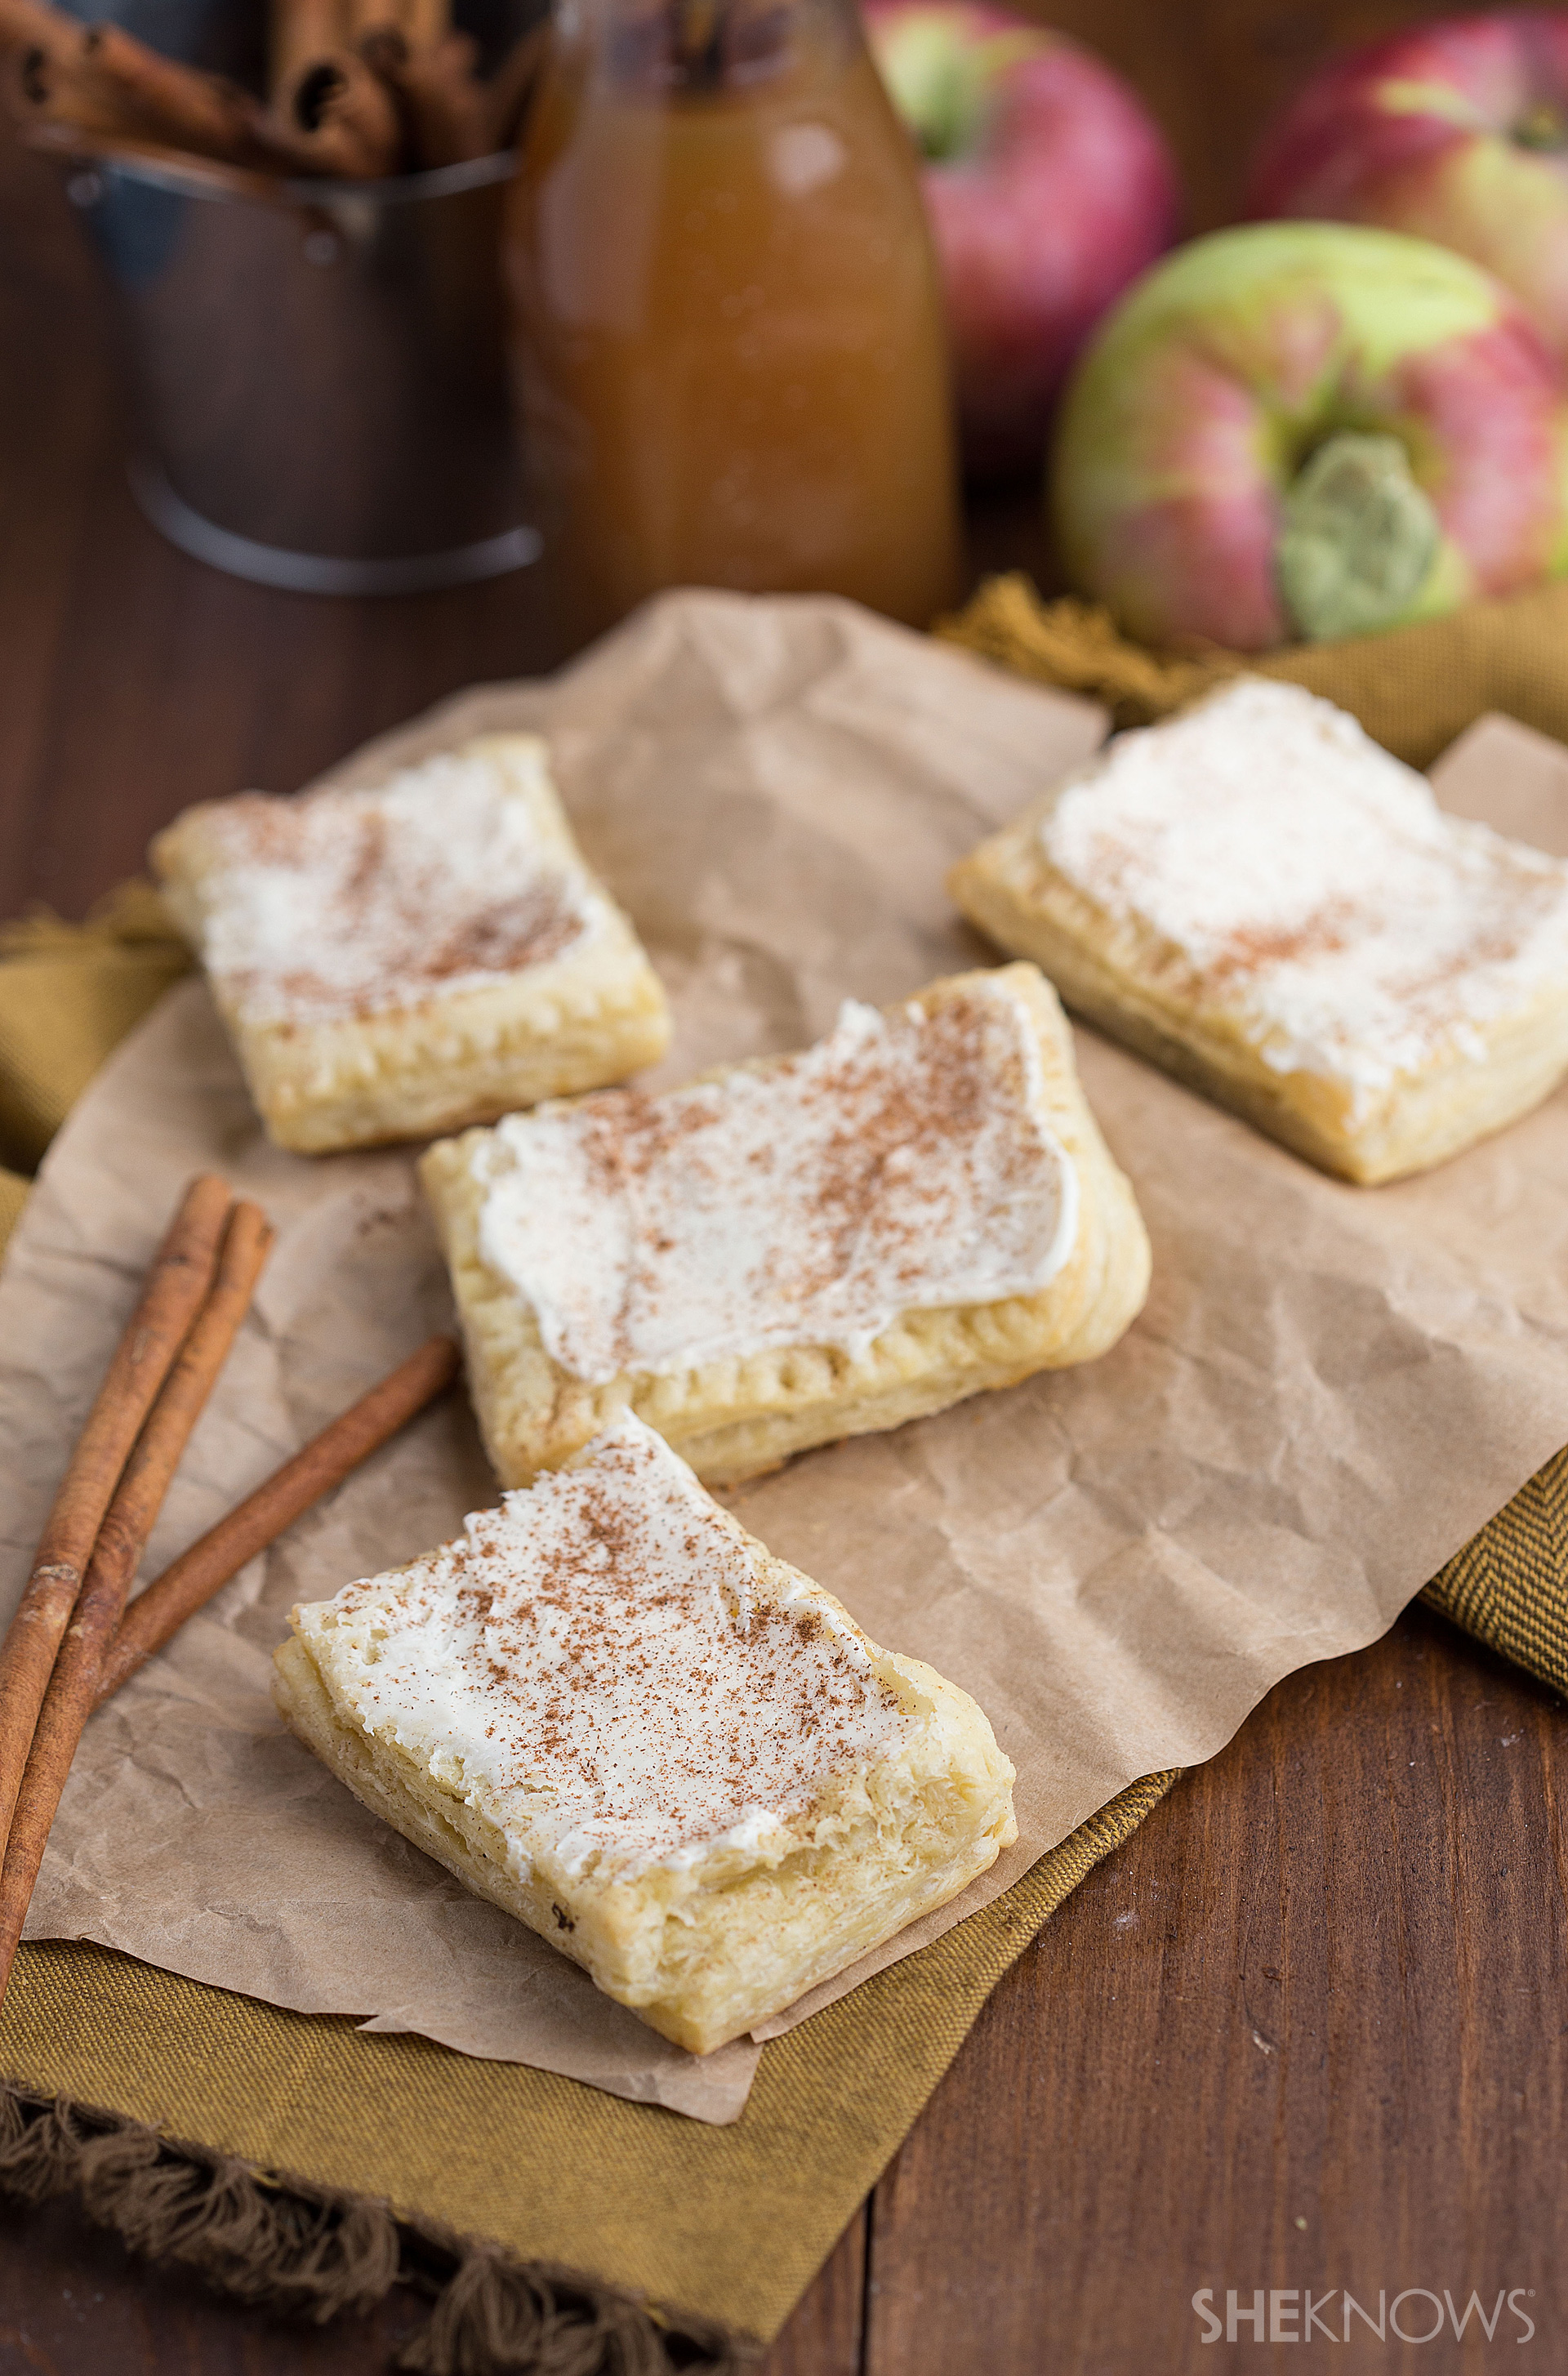 Apple and cream cheese toaster strudel